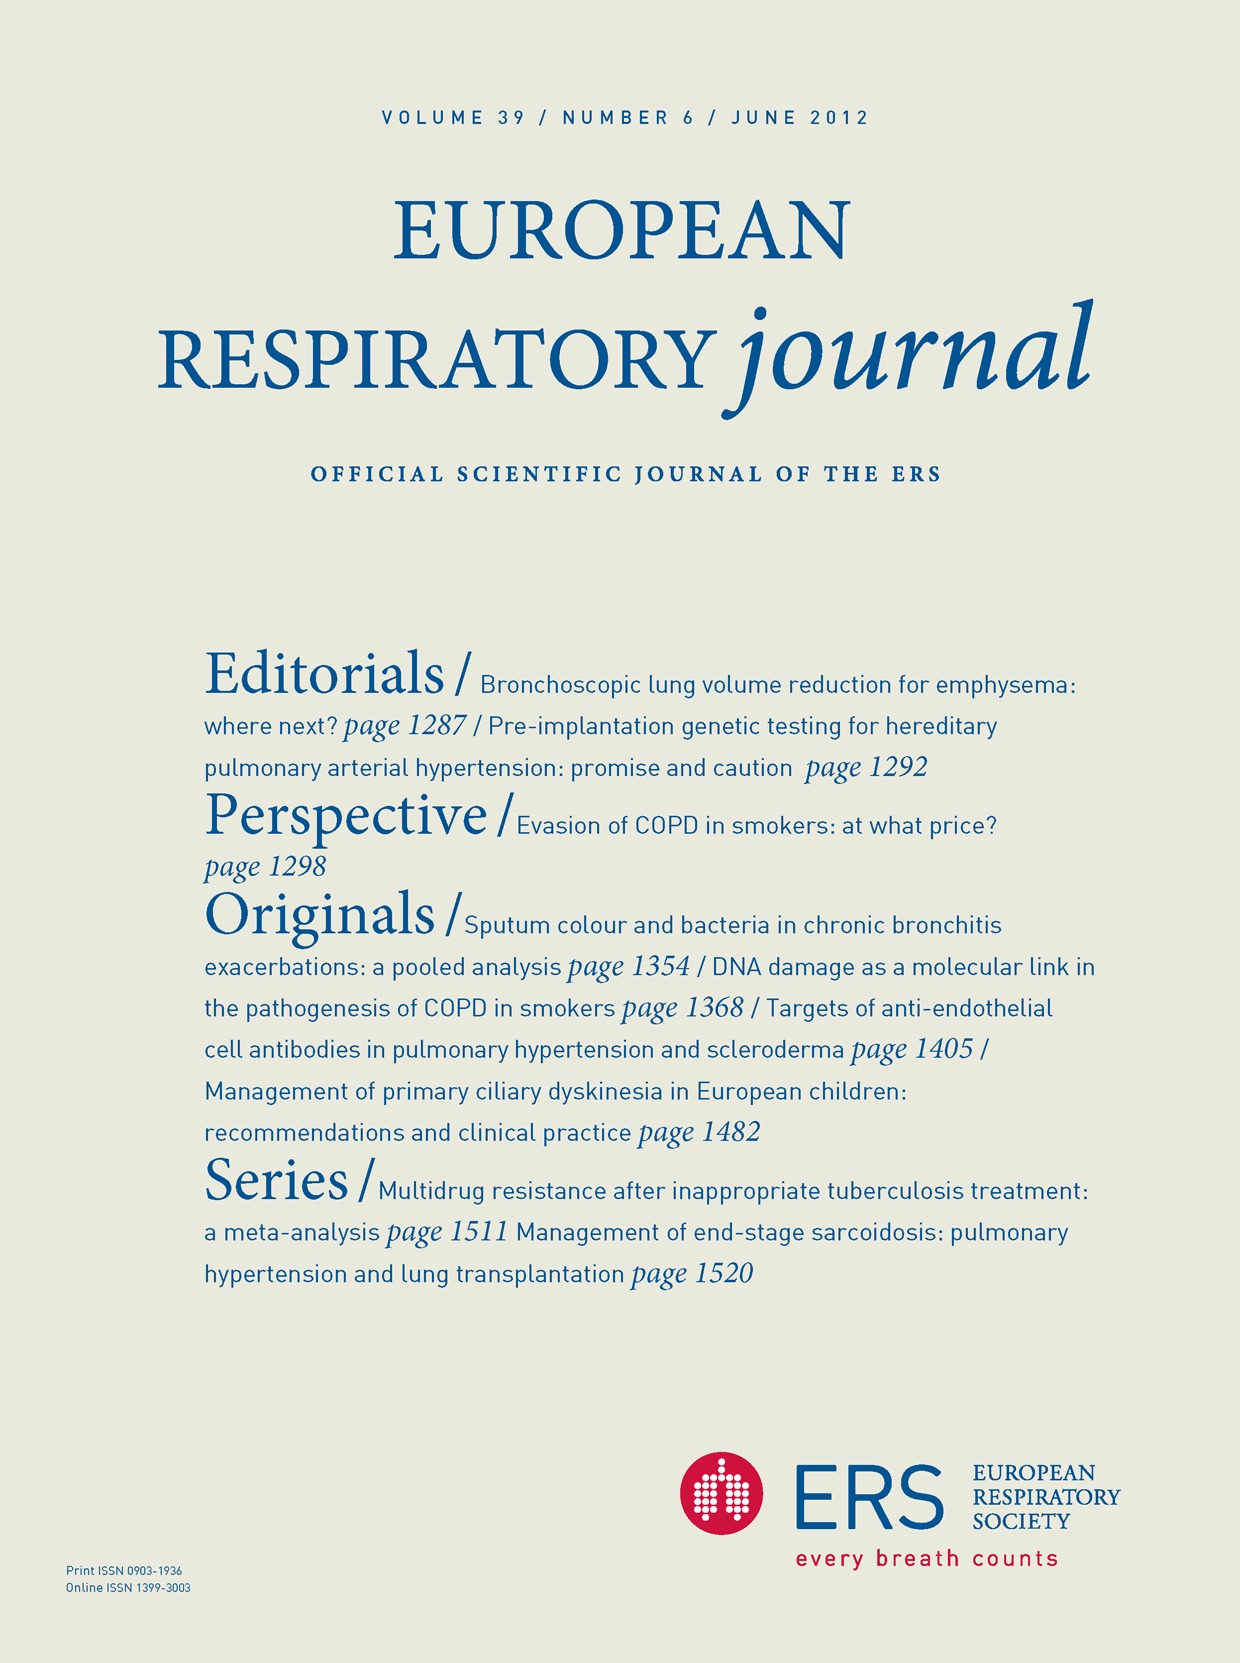 Management of end-stage sarcoidosis: pulmonary hypertension